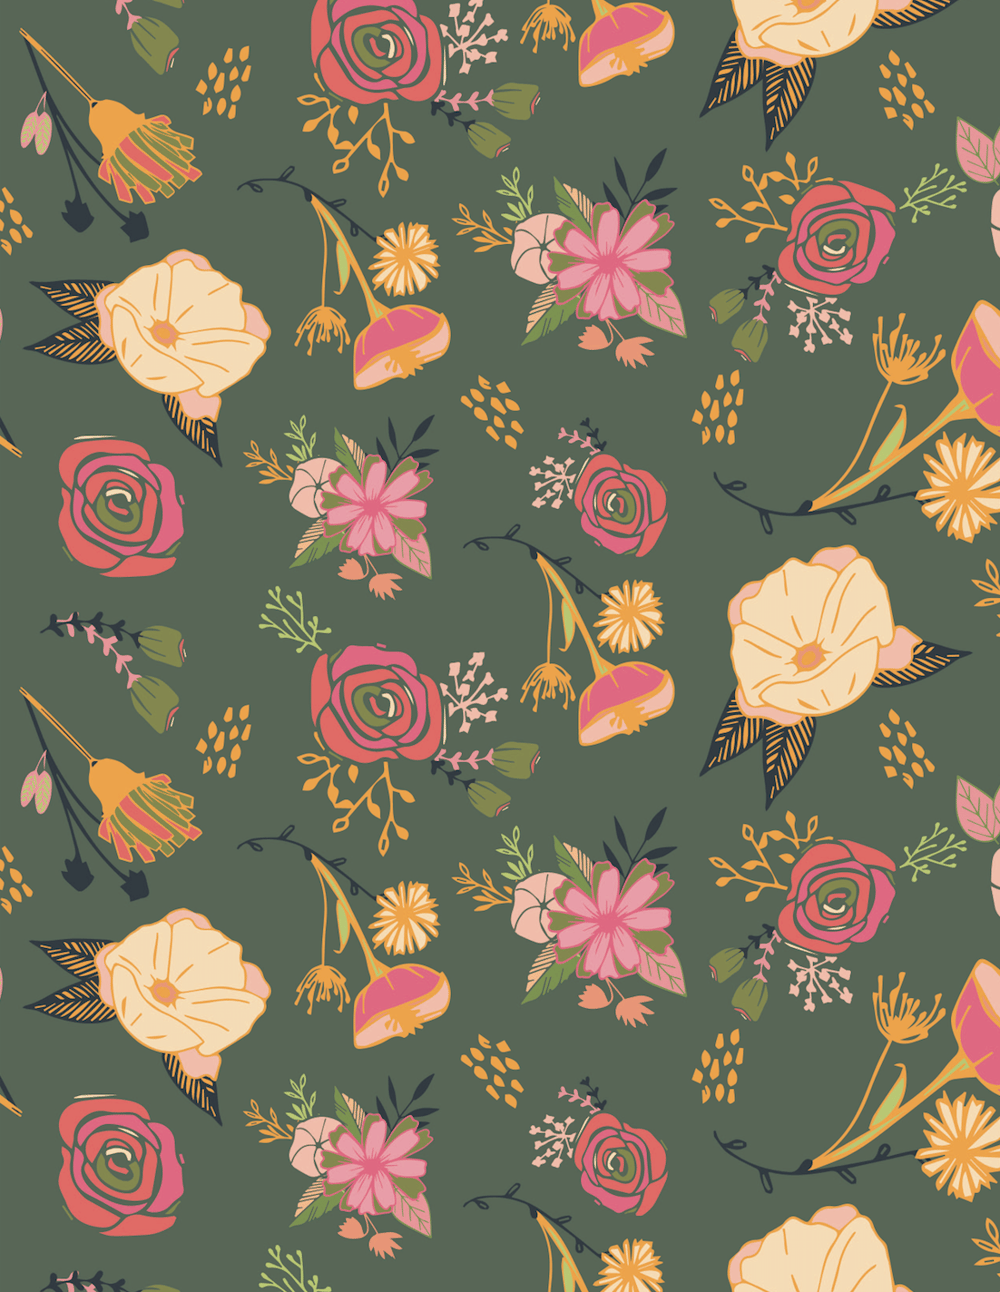 Surface Pattern Design 1 - image 9 - student project